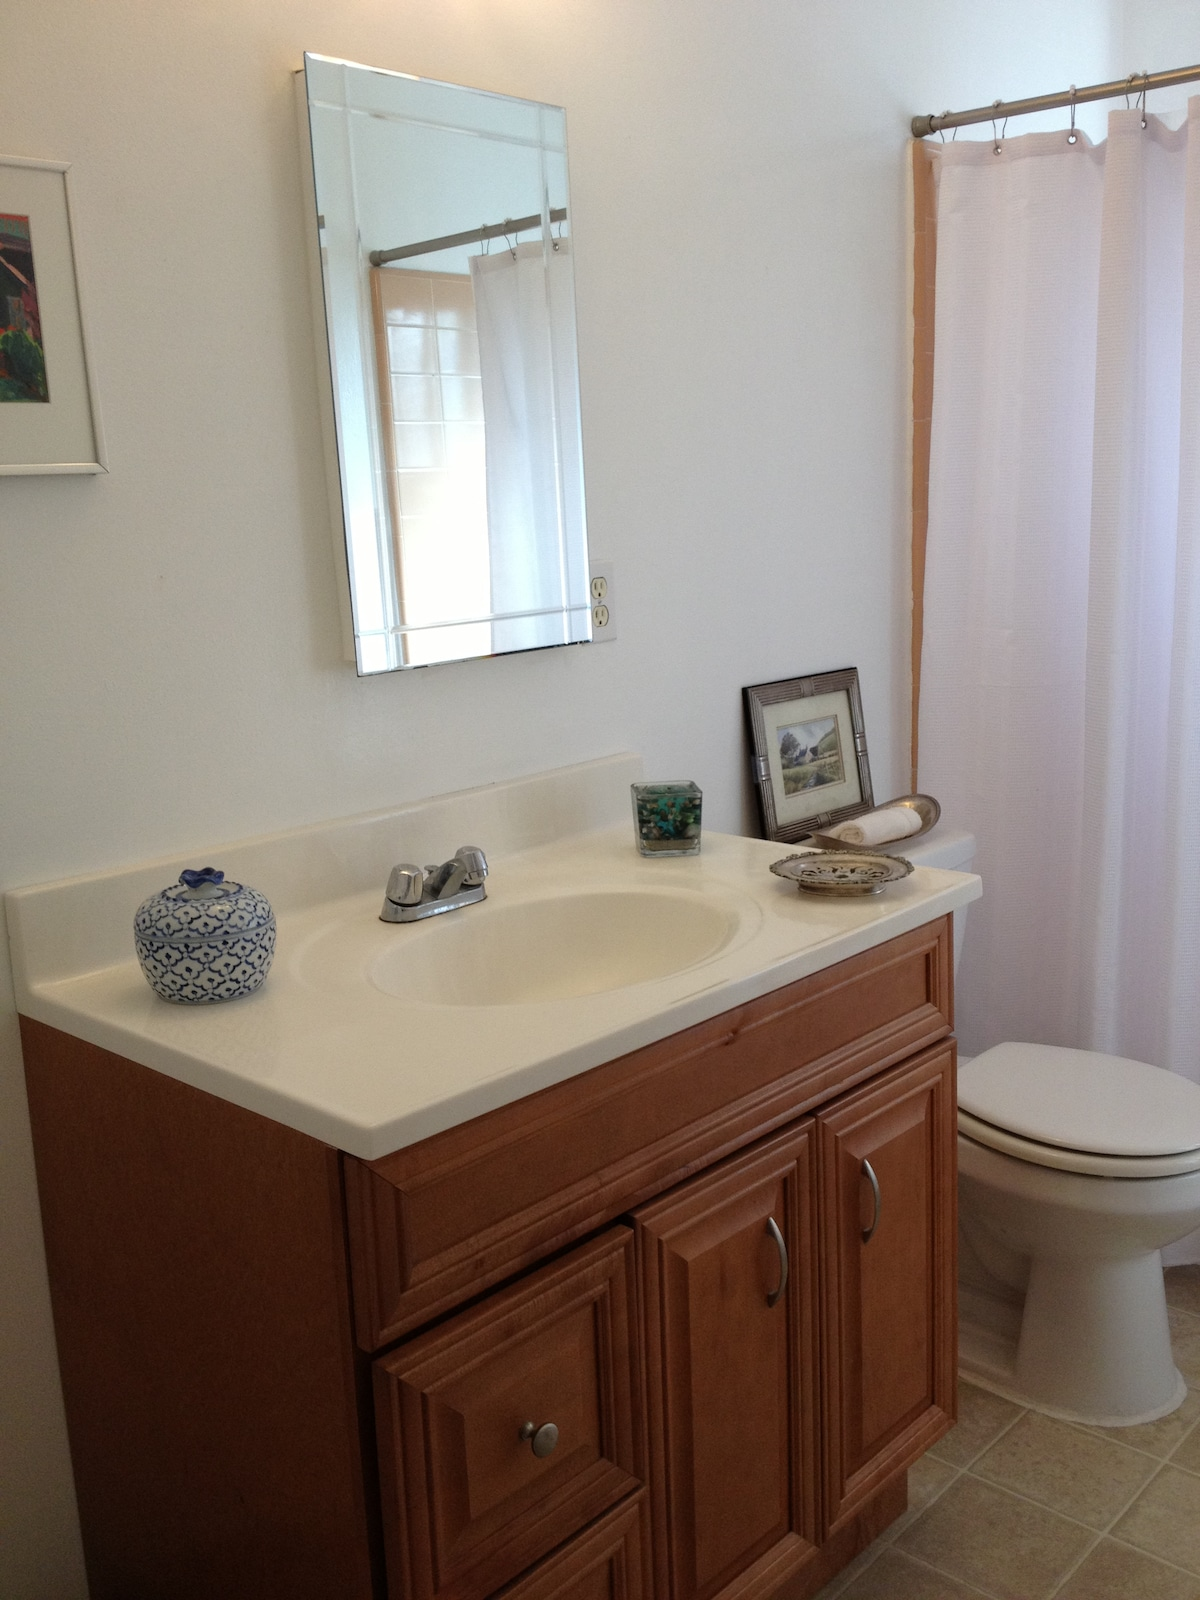 Guest bathroom - medicine chest and more